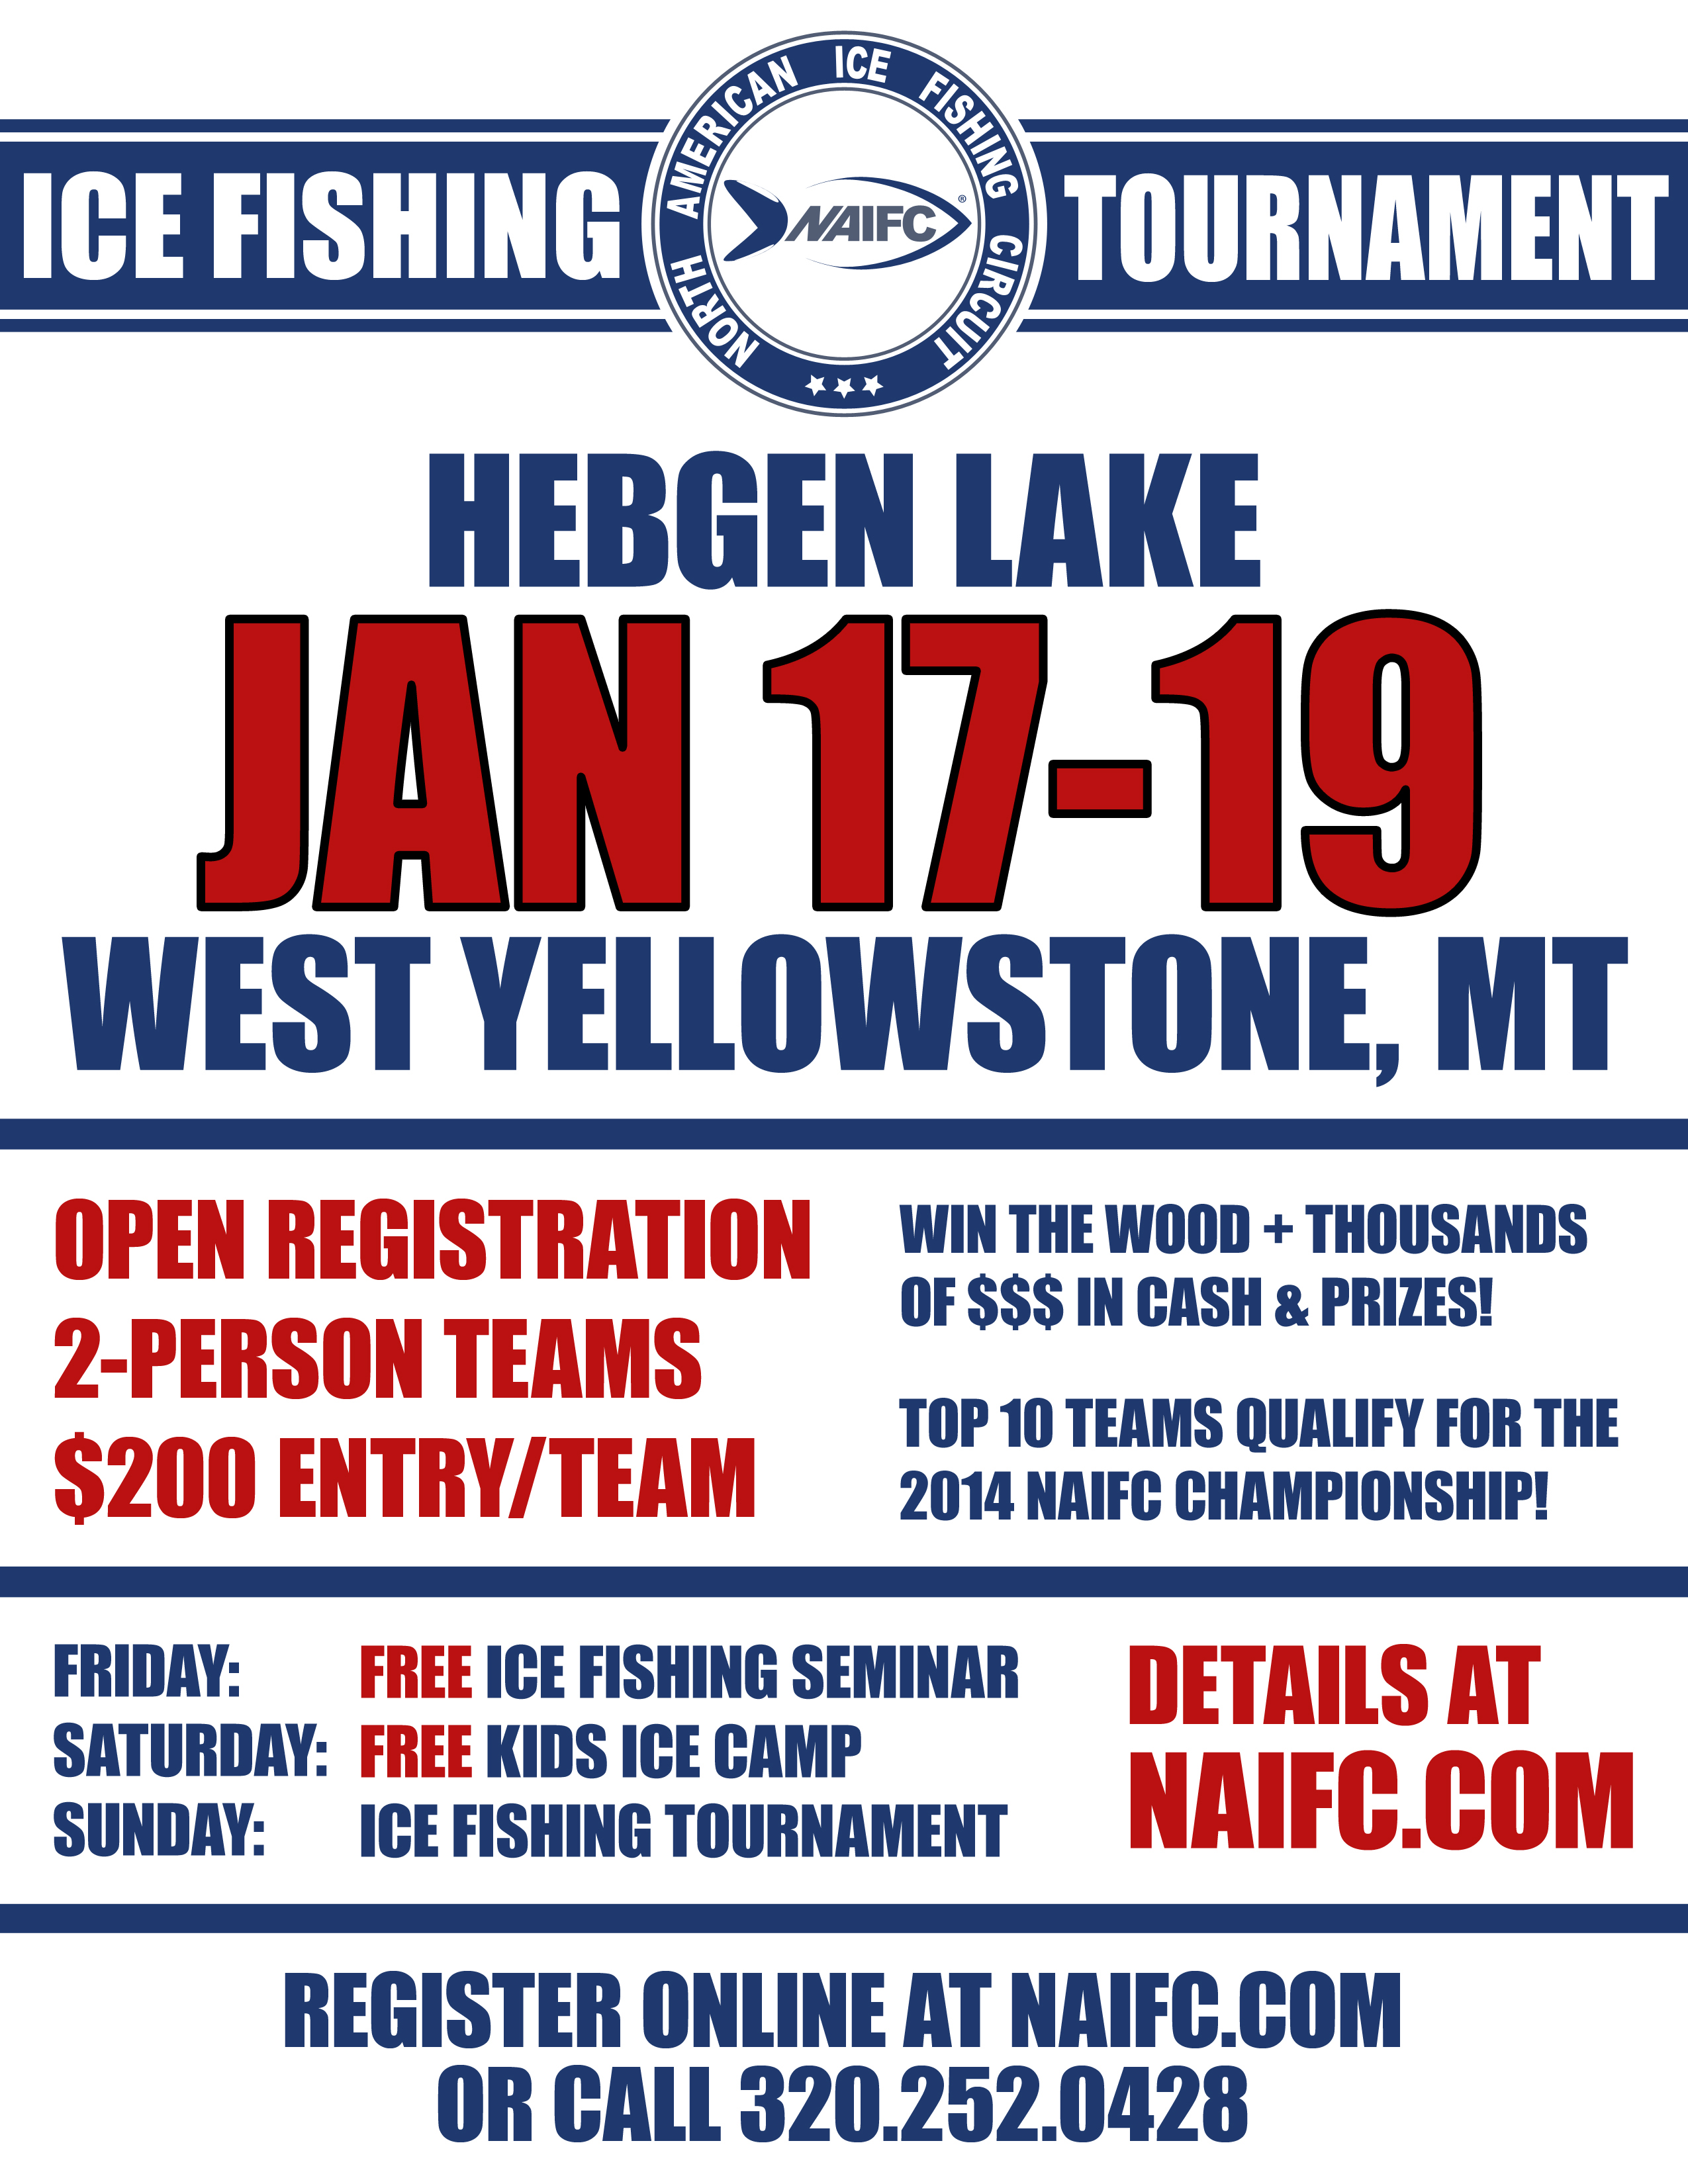 2014 NAIFC Tourney Flyer - Hebgen MT